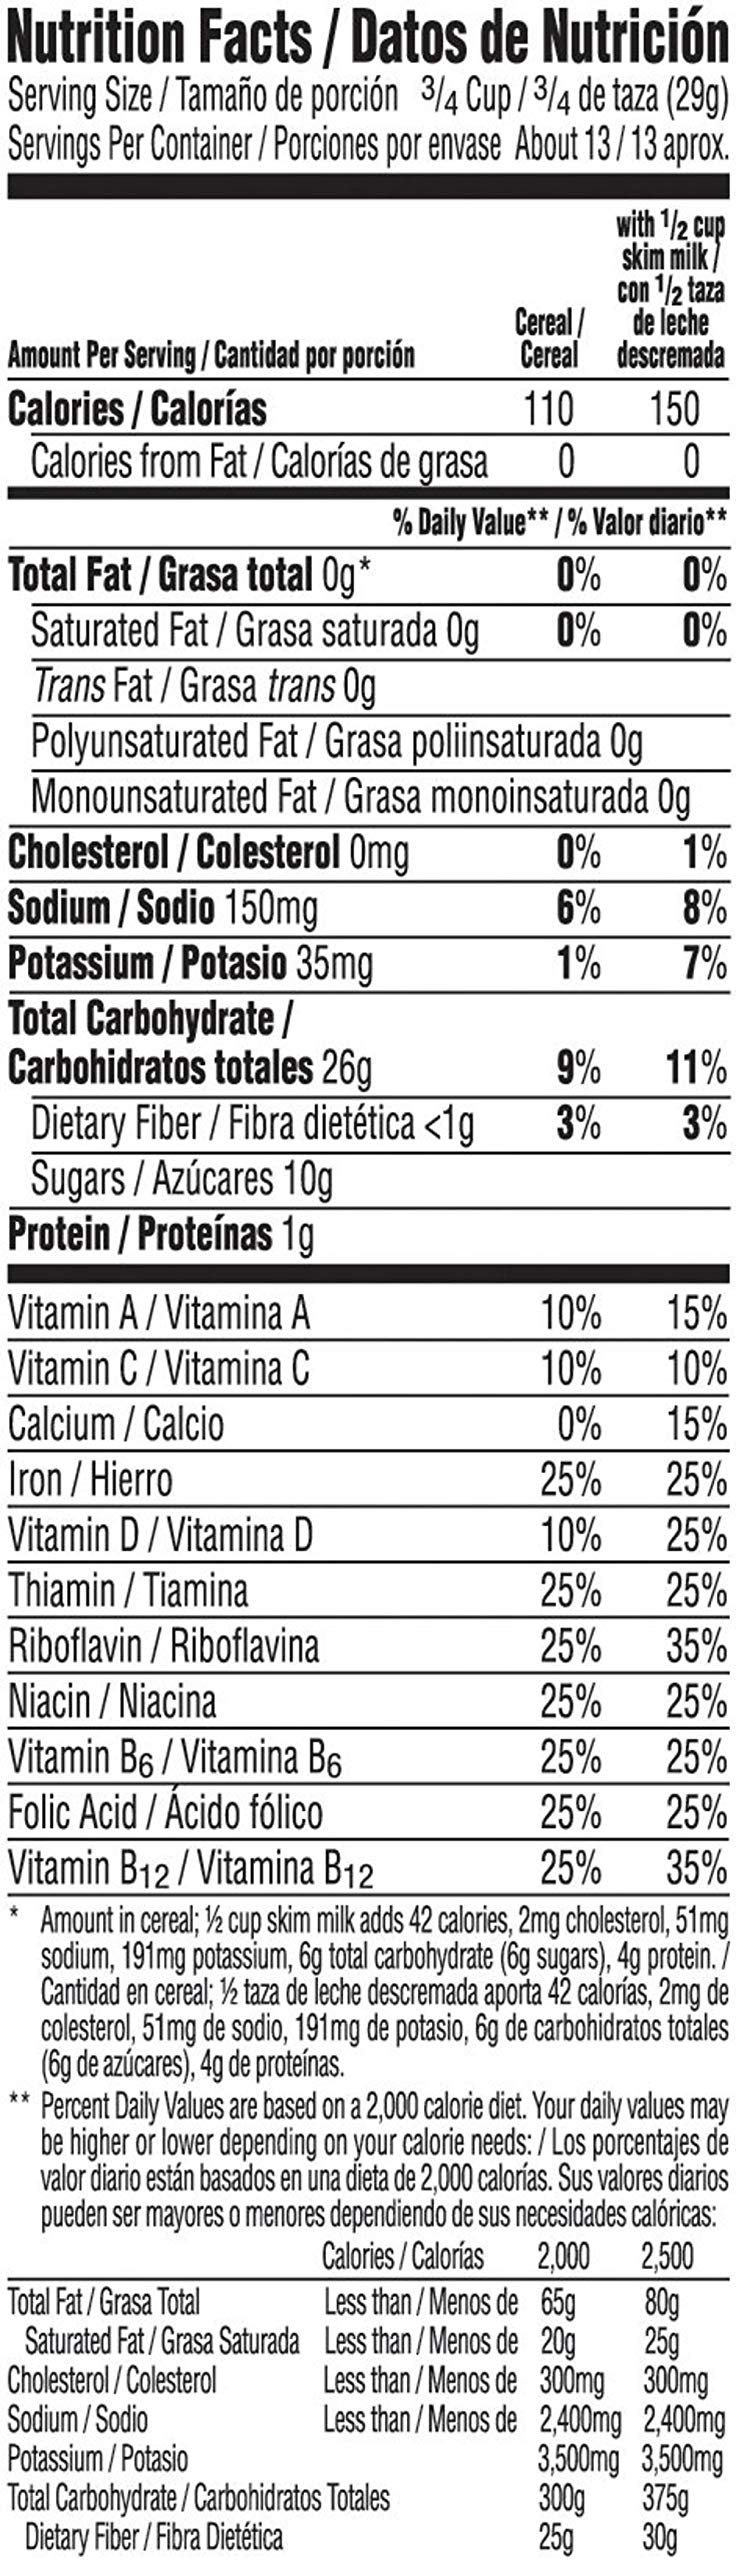 Kellogg's Fat-Free Breakfast Cereal, Frosted Flakes, 13.5 Ounce(Pack of 16) by Kellogg's (Image #2)